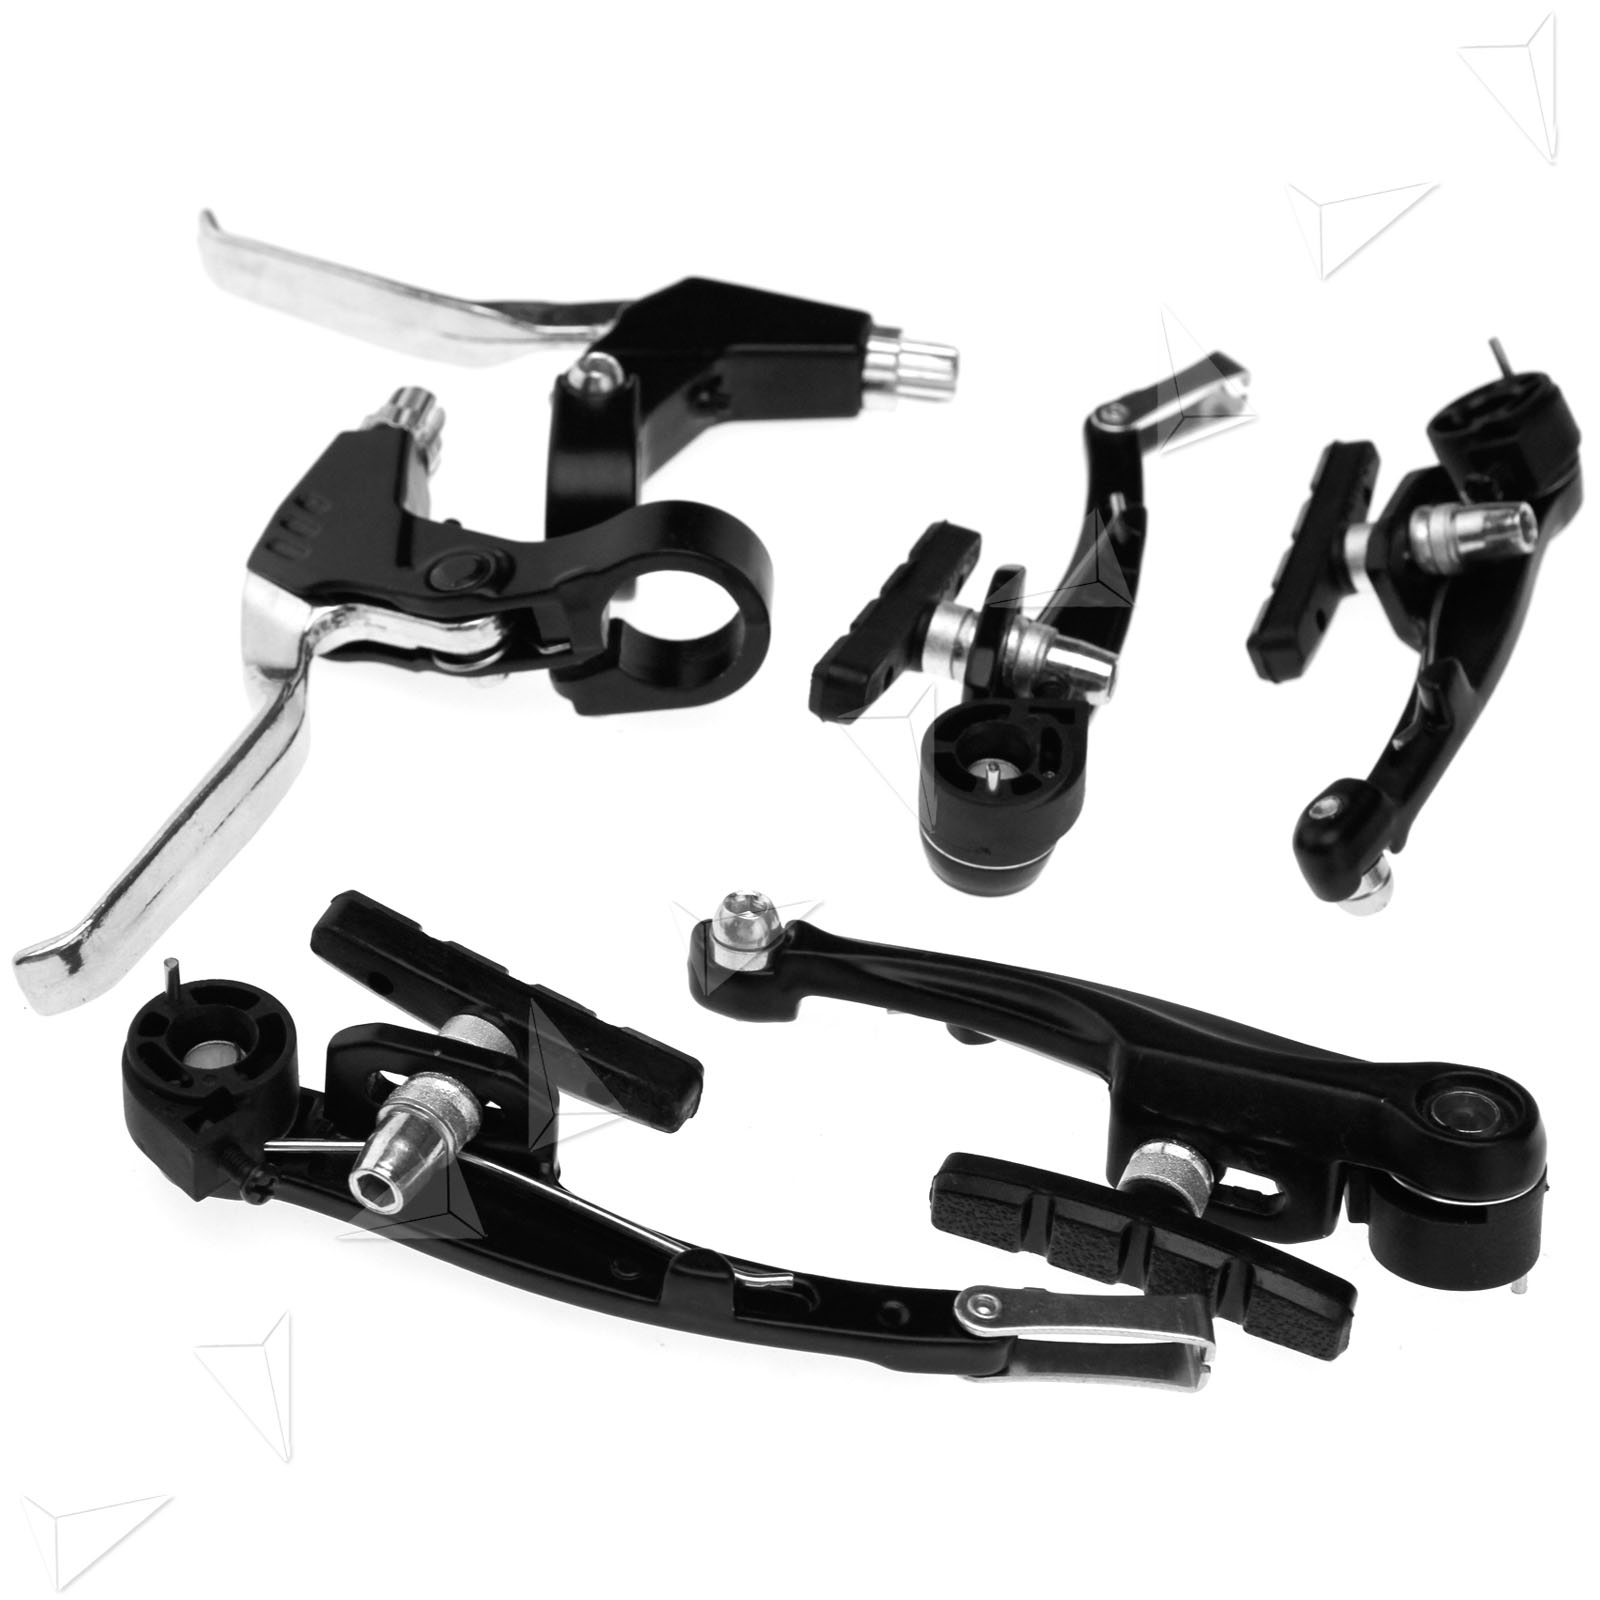 Cable Brake Lever : Brake levers v brakes cables caliper set for bmx mountain